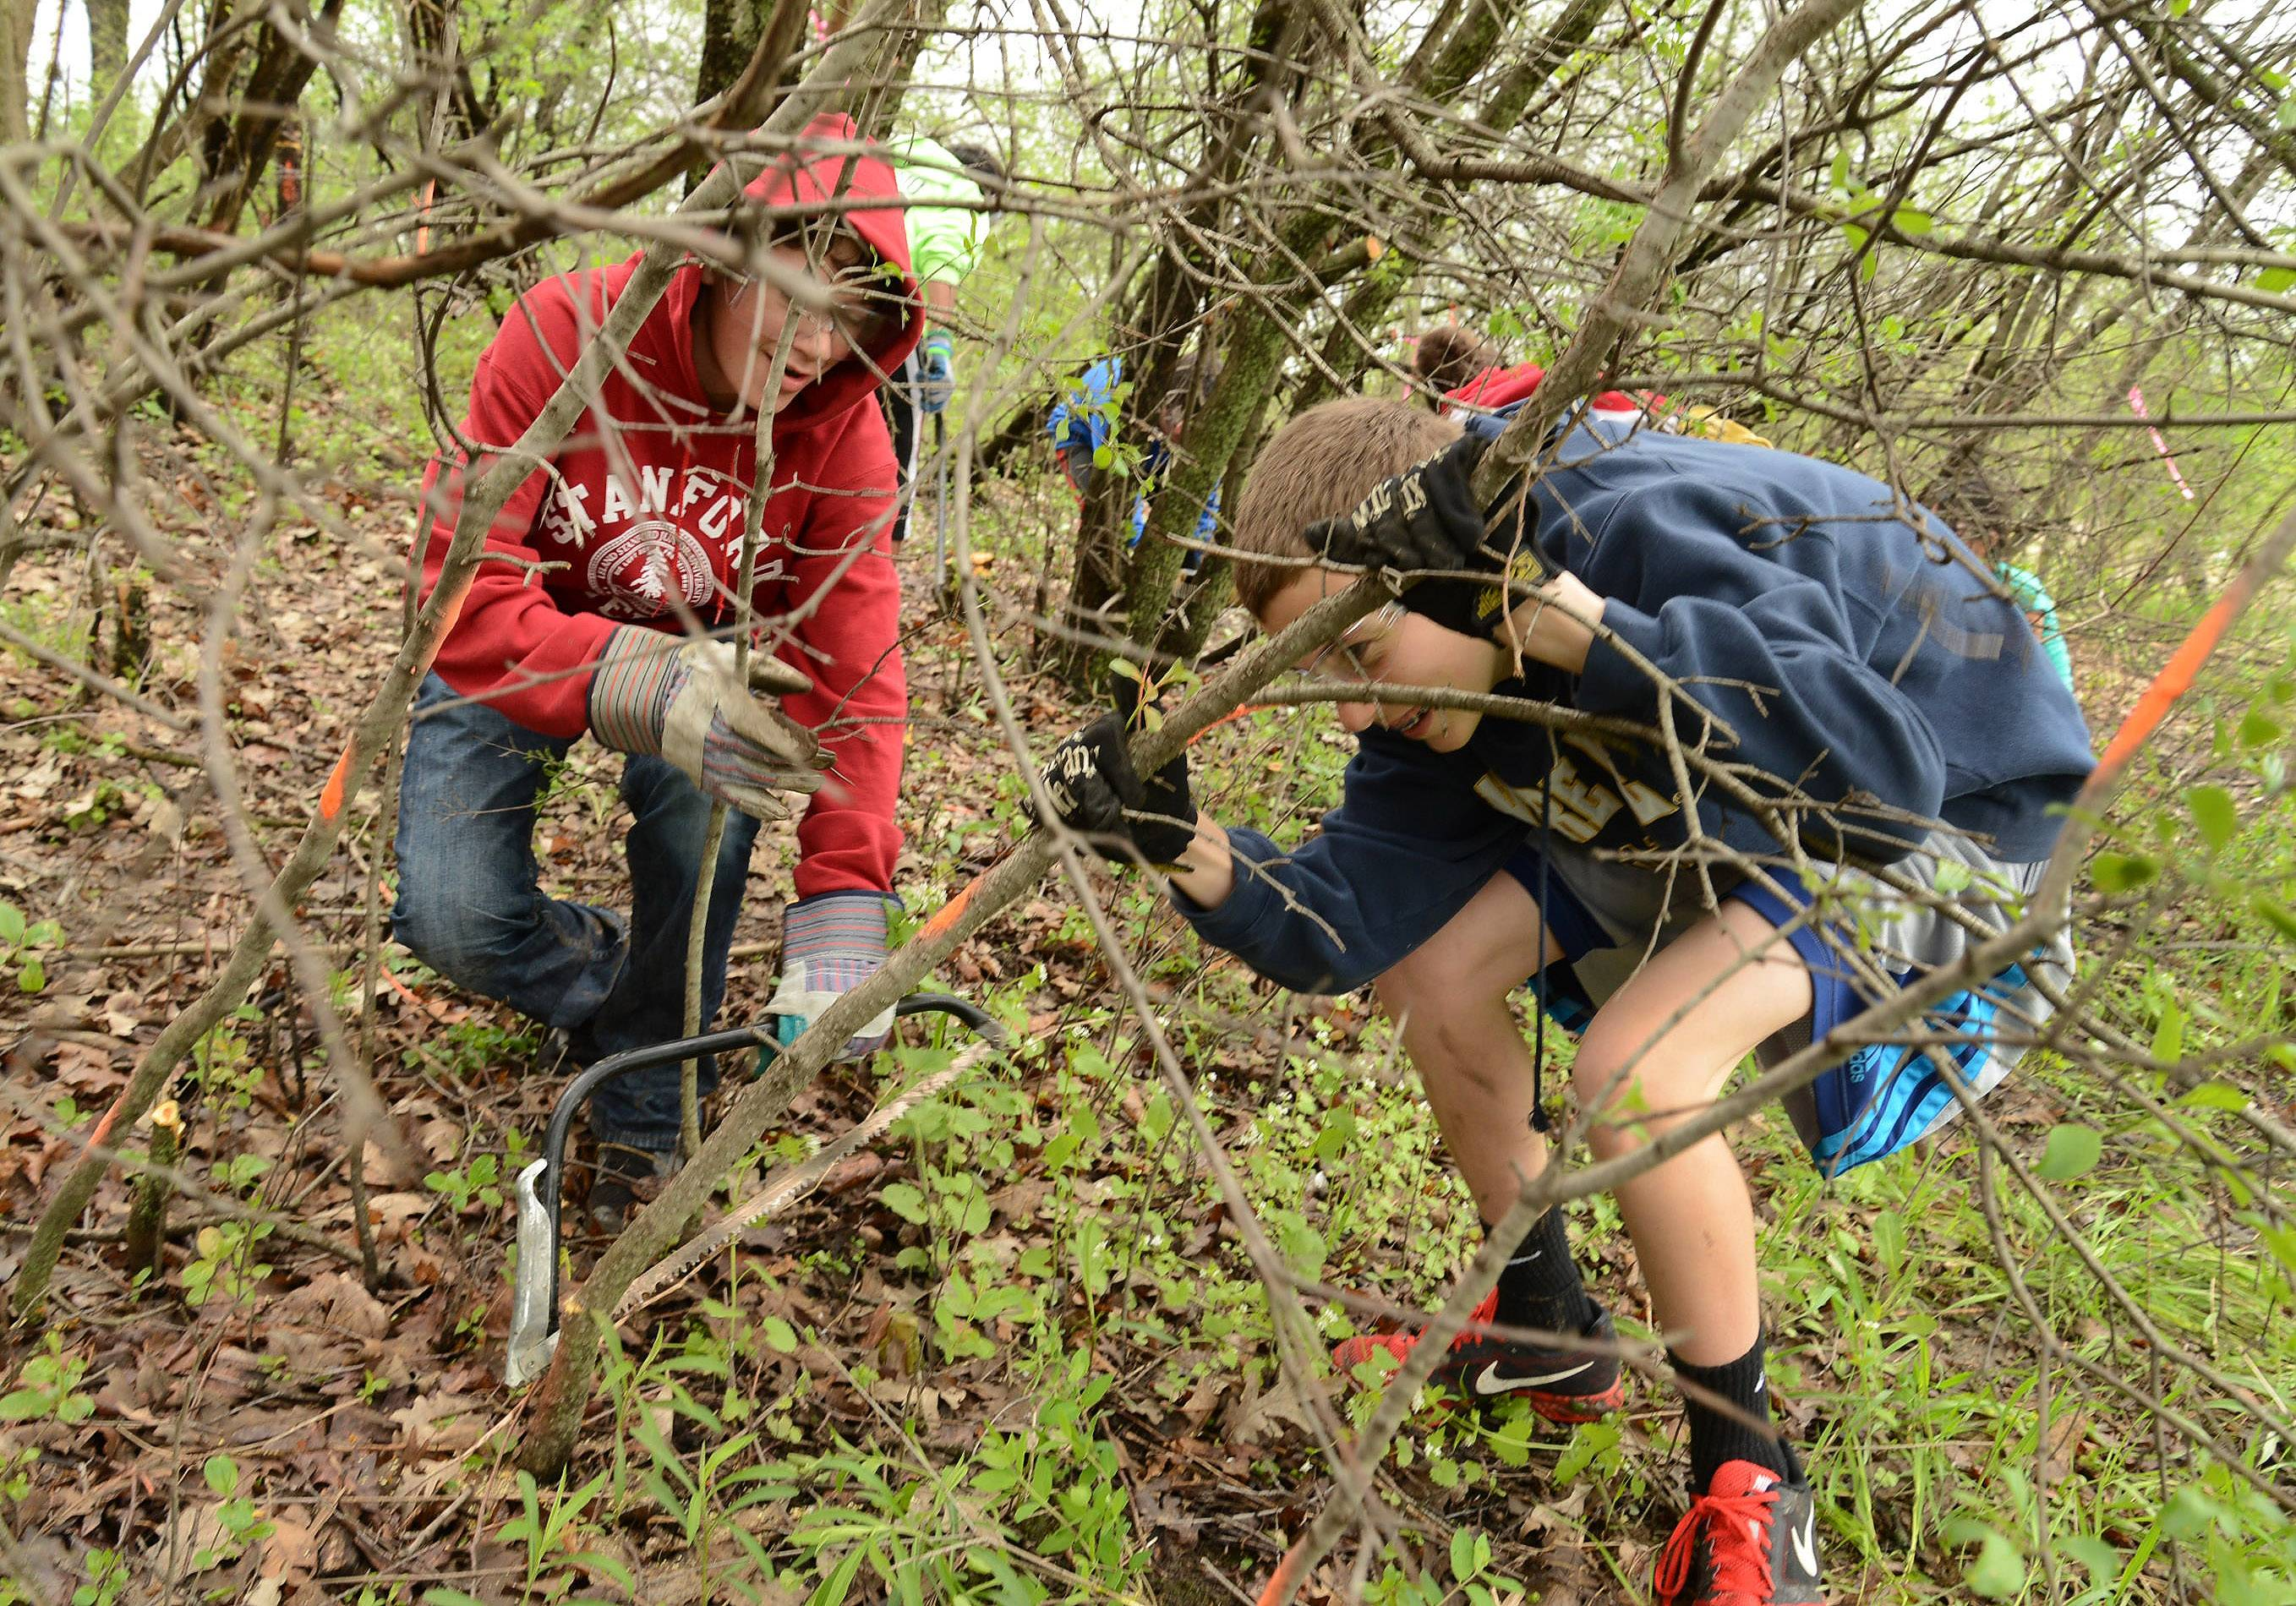 Justin Winters, left, and Nolan Feeney hack away at European buckthorn in the Ray Lake Farms Forest behind their school Tuesday.